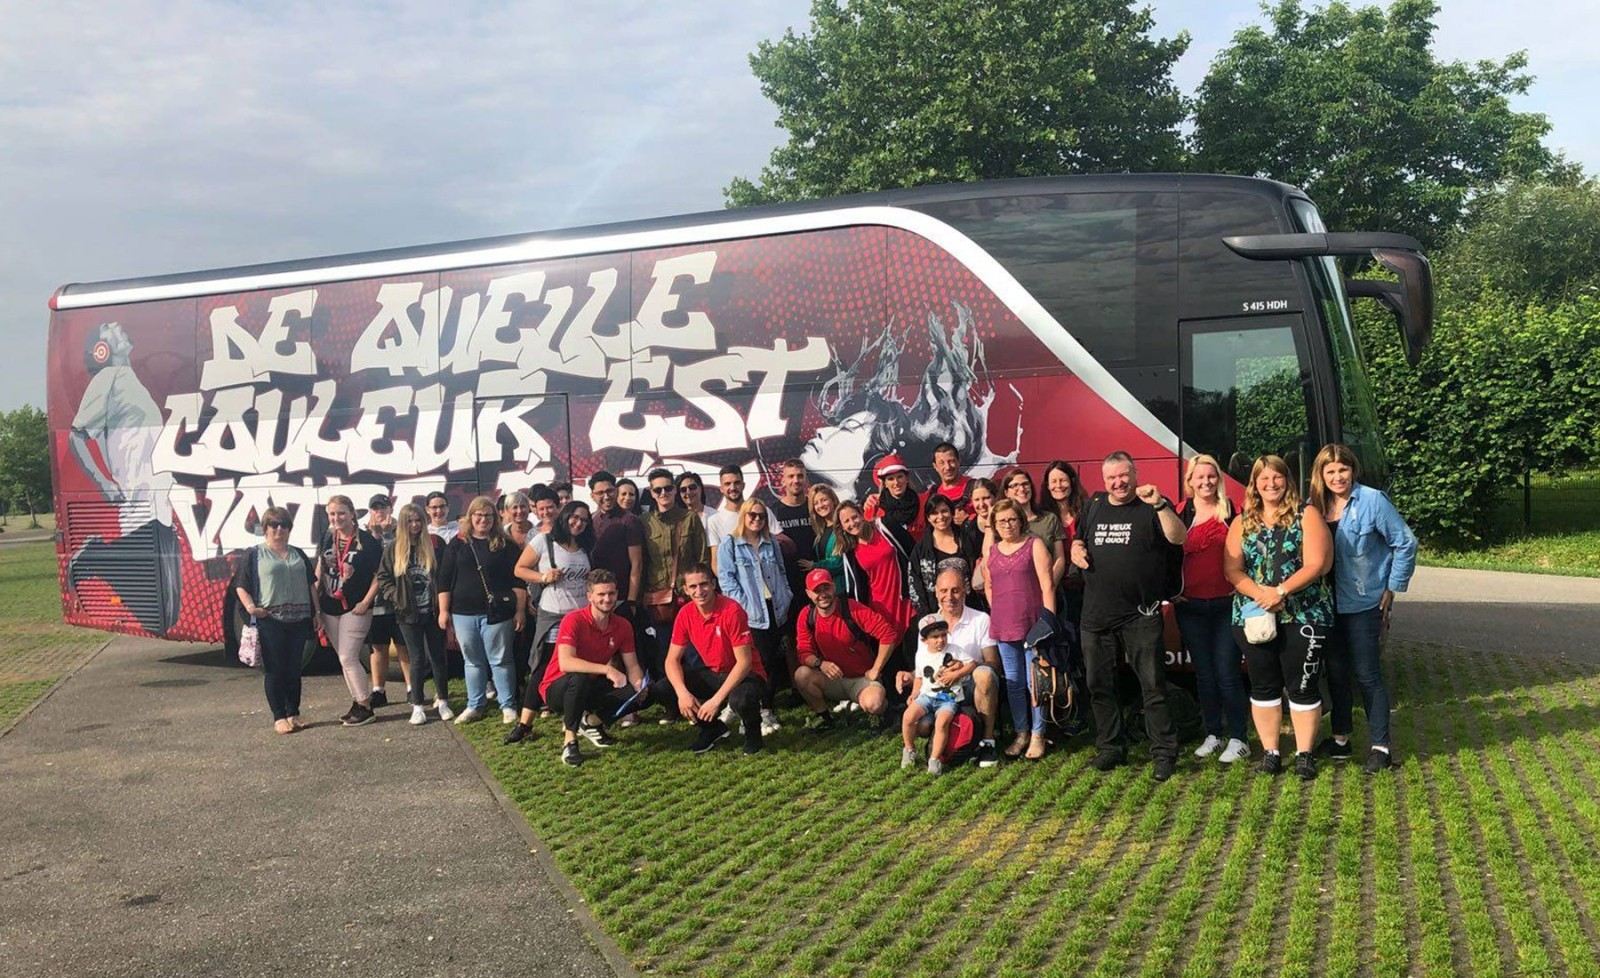 bus-rouge-group-rotulacion